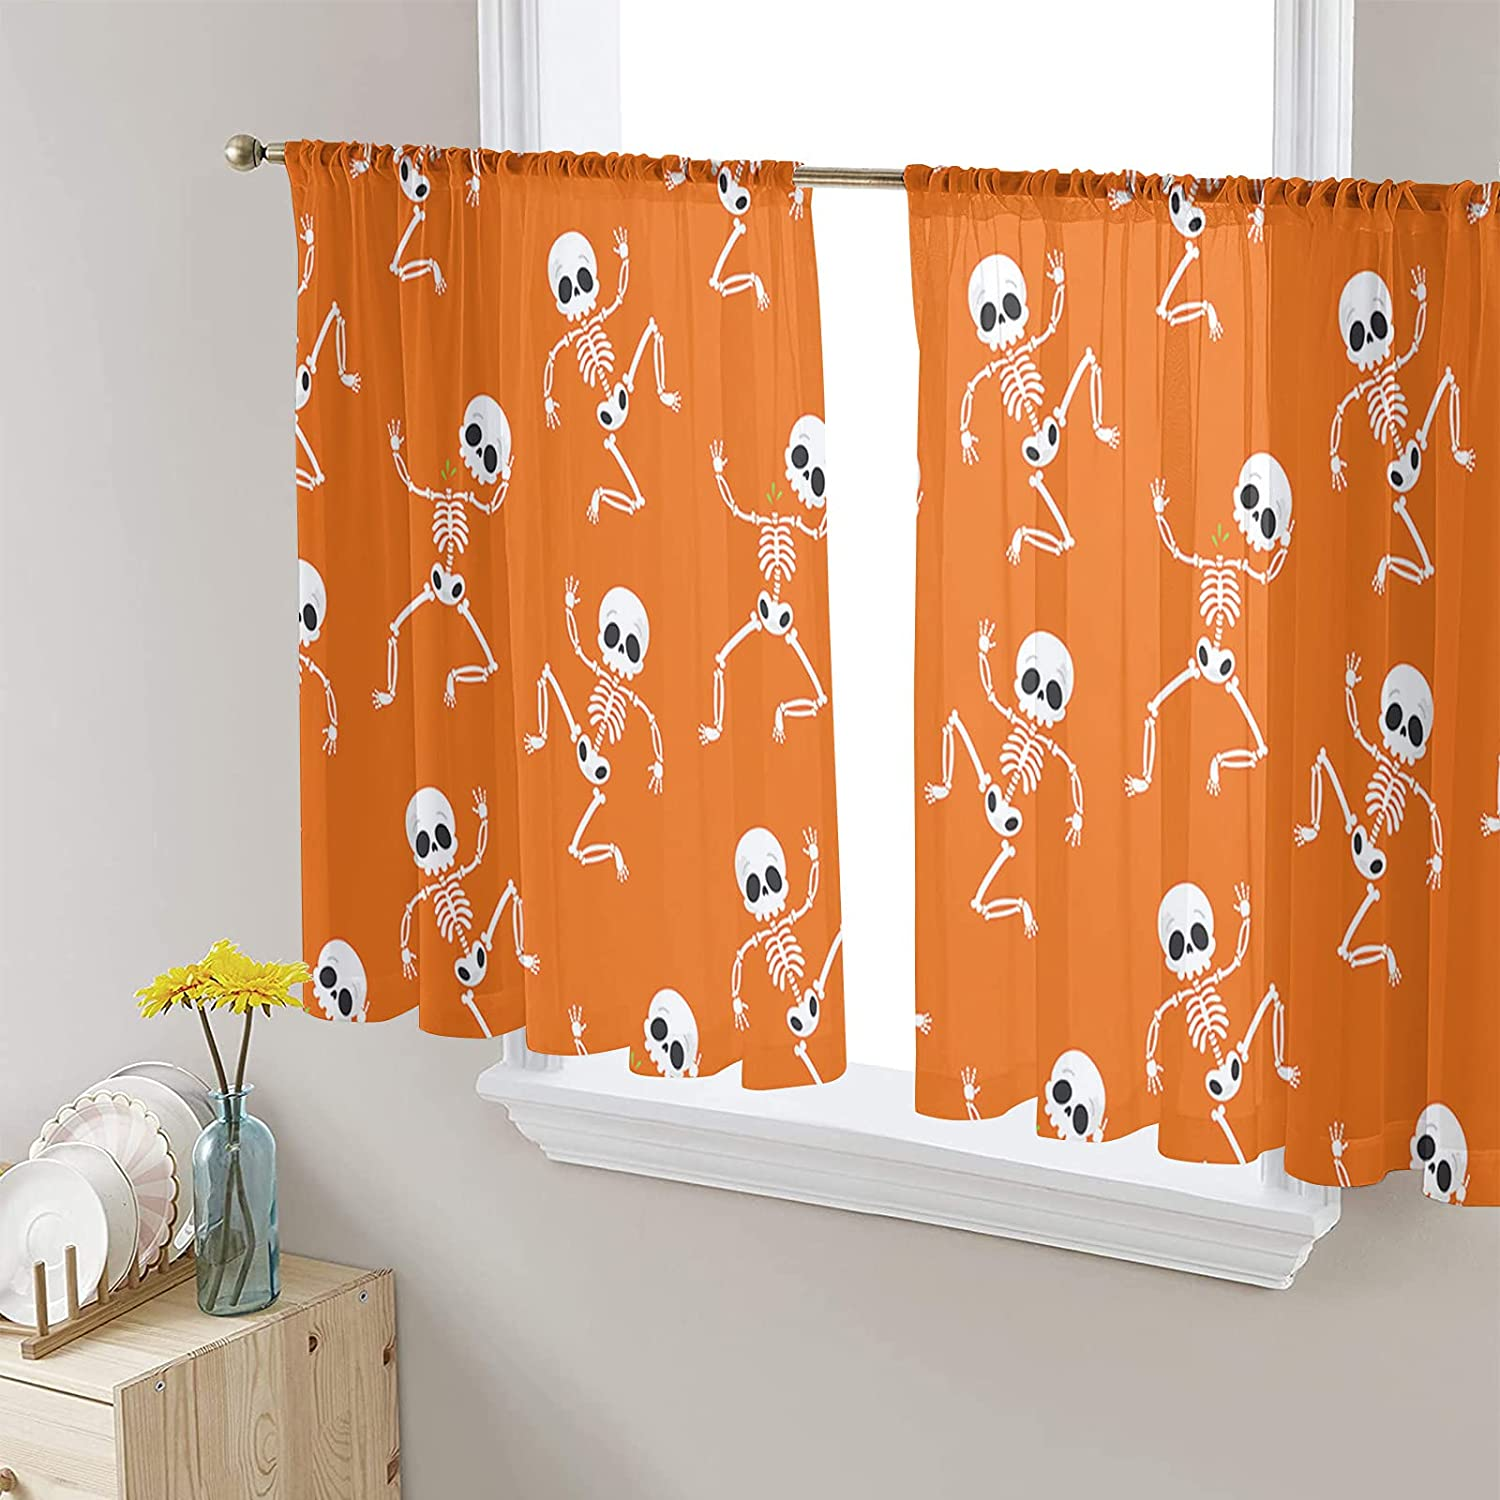 Sheer NEW Voile Chiffon Window Curtains Super beauty product restock quality top! Soft with Fre Wrinkle Touch